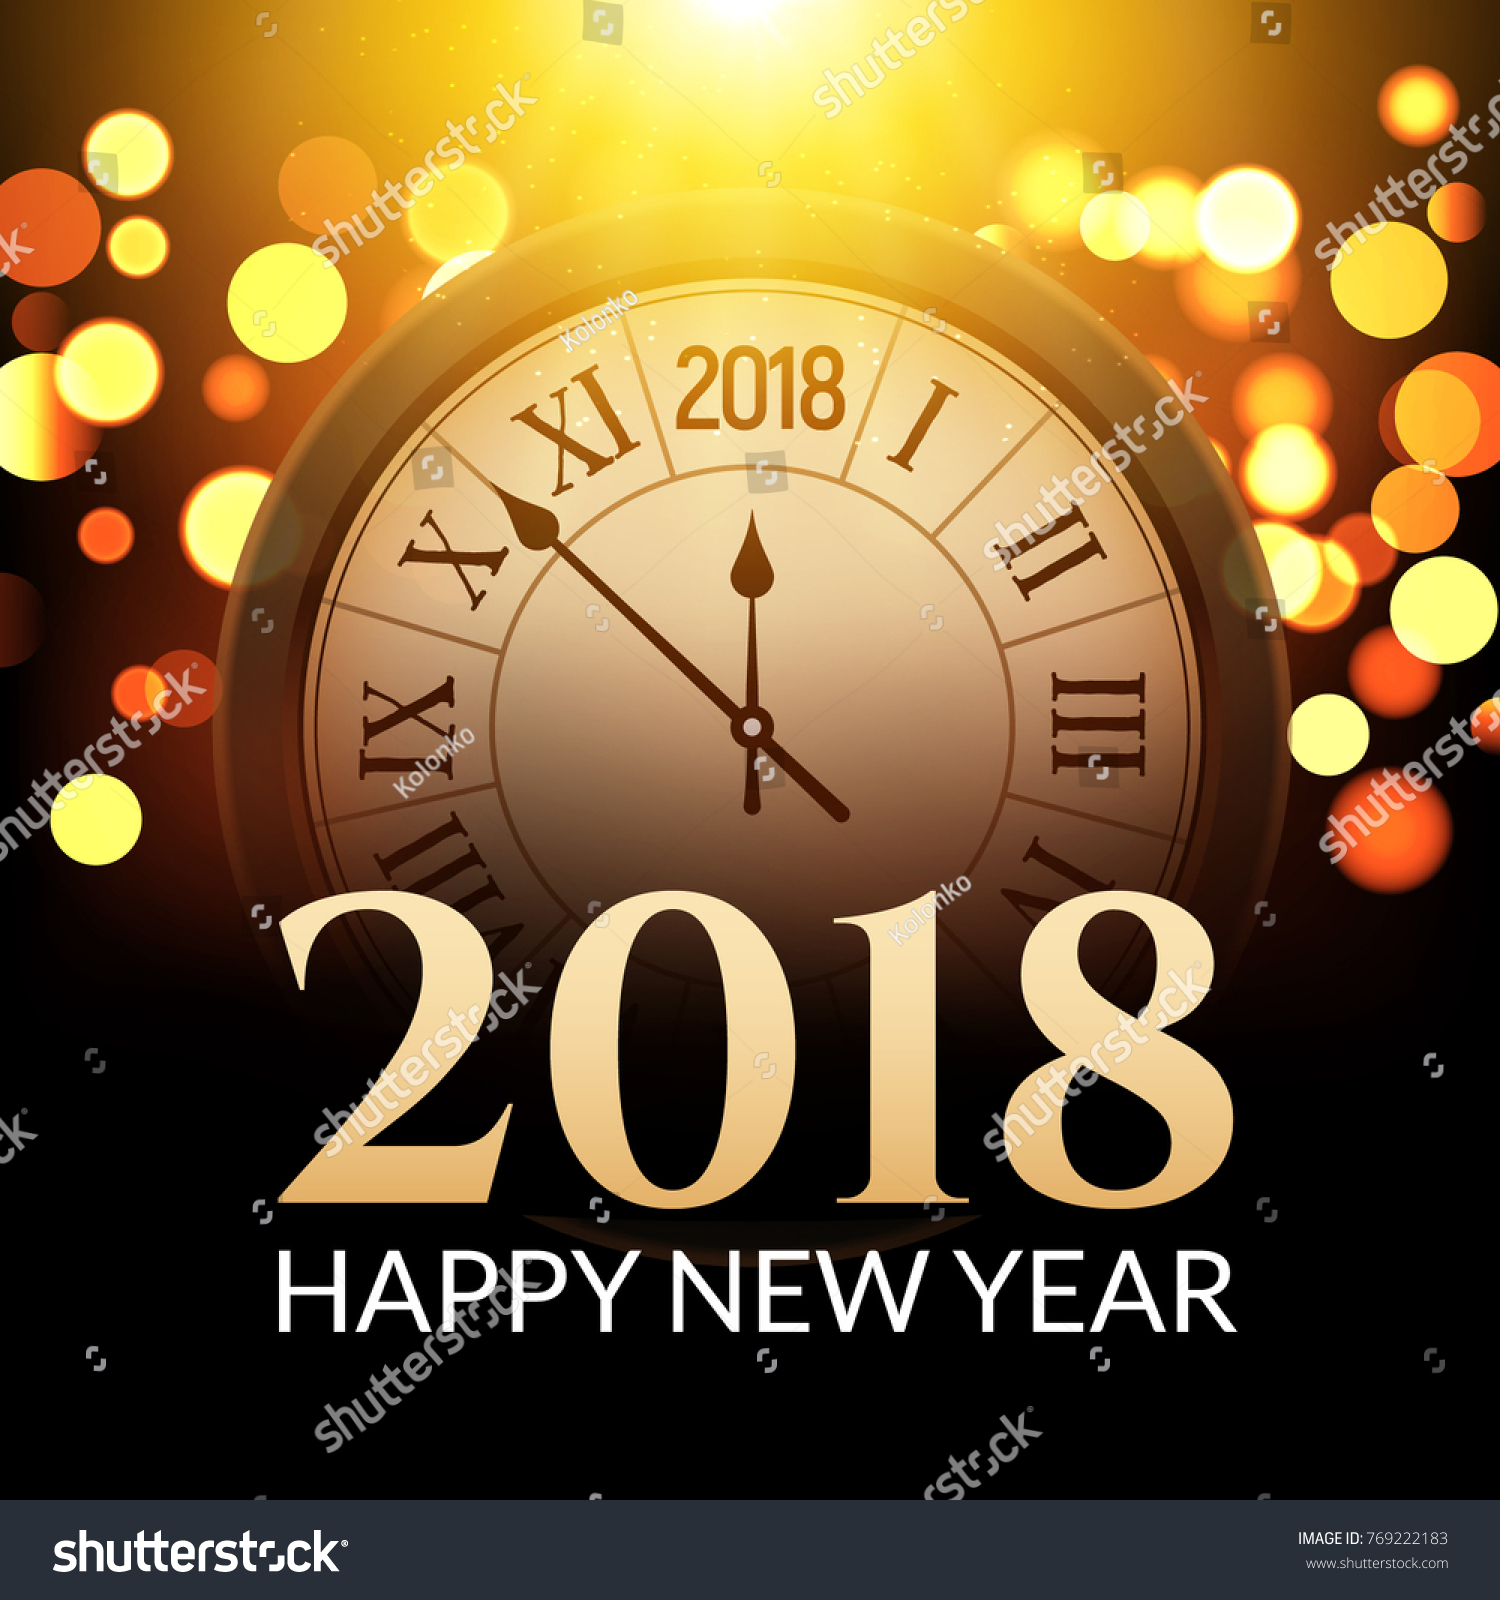 2018 new year shining background with clock happy new year 2018 celebration decoration poster